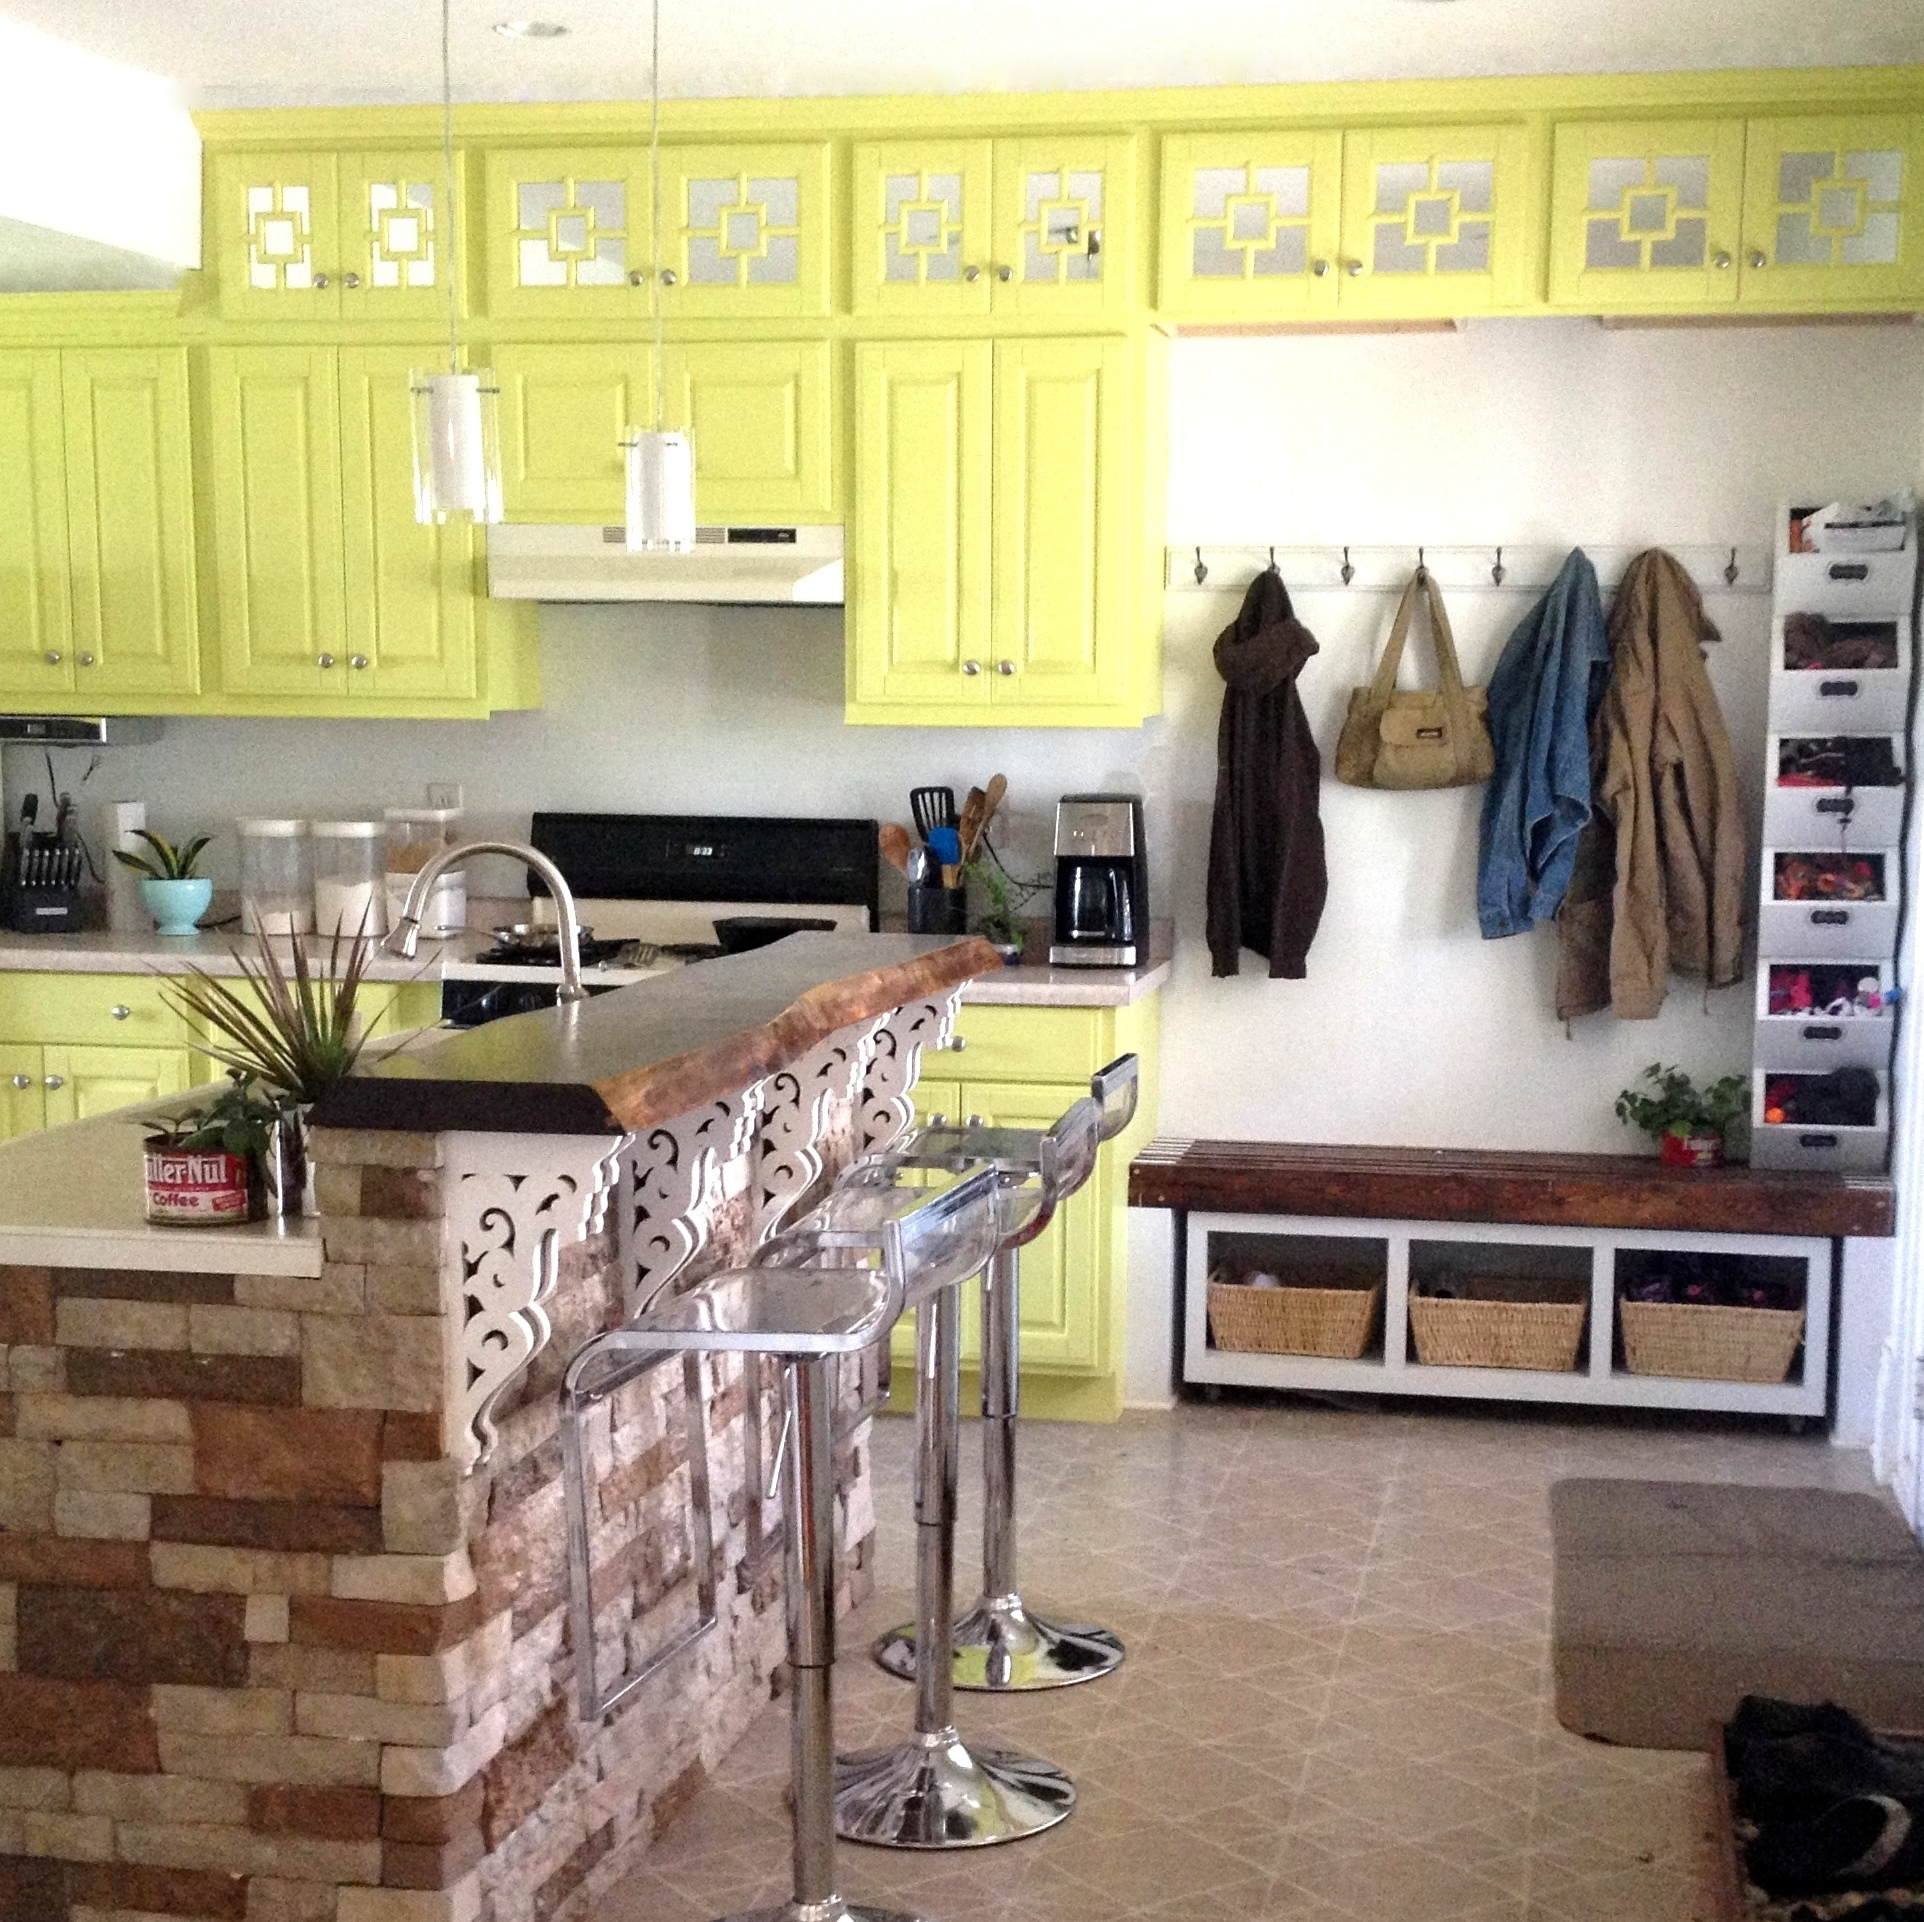 Al al alno kitchen cabinets chicago - Extending Kitchen Cabinets Up To The Ceiling Sawdust And